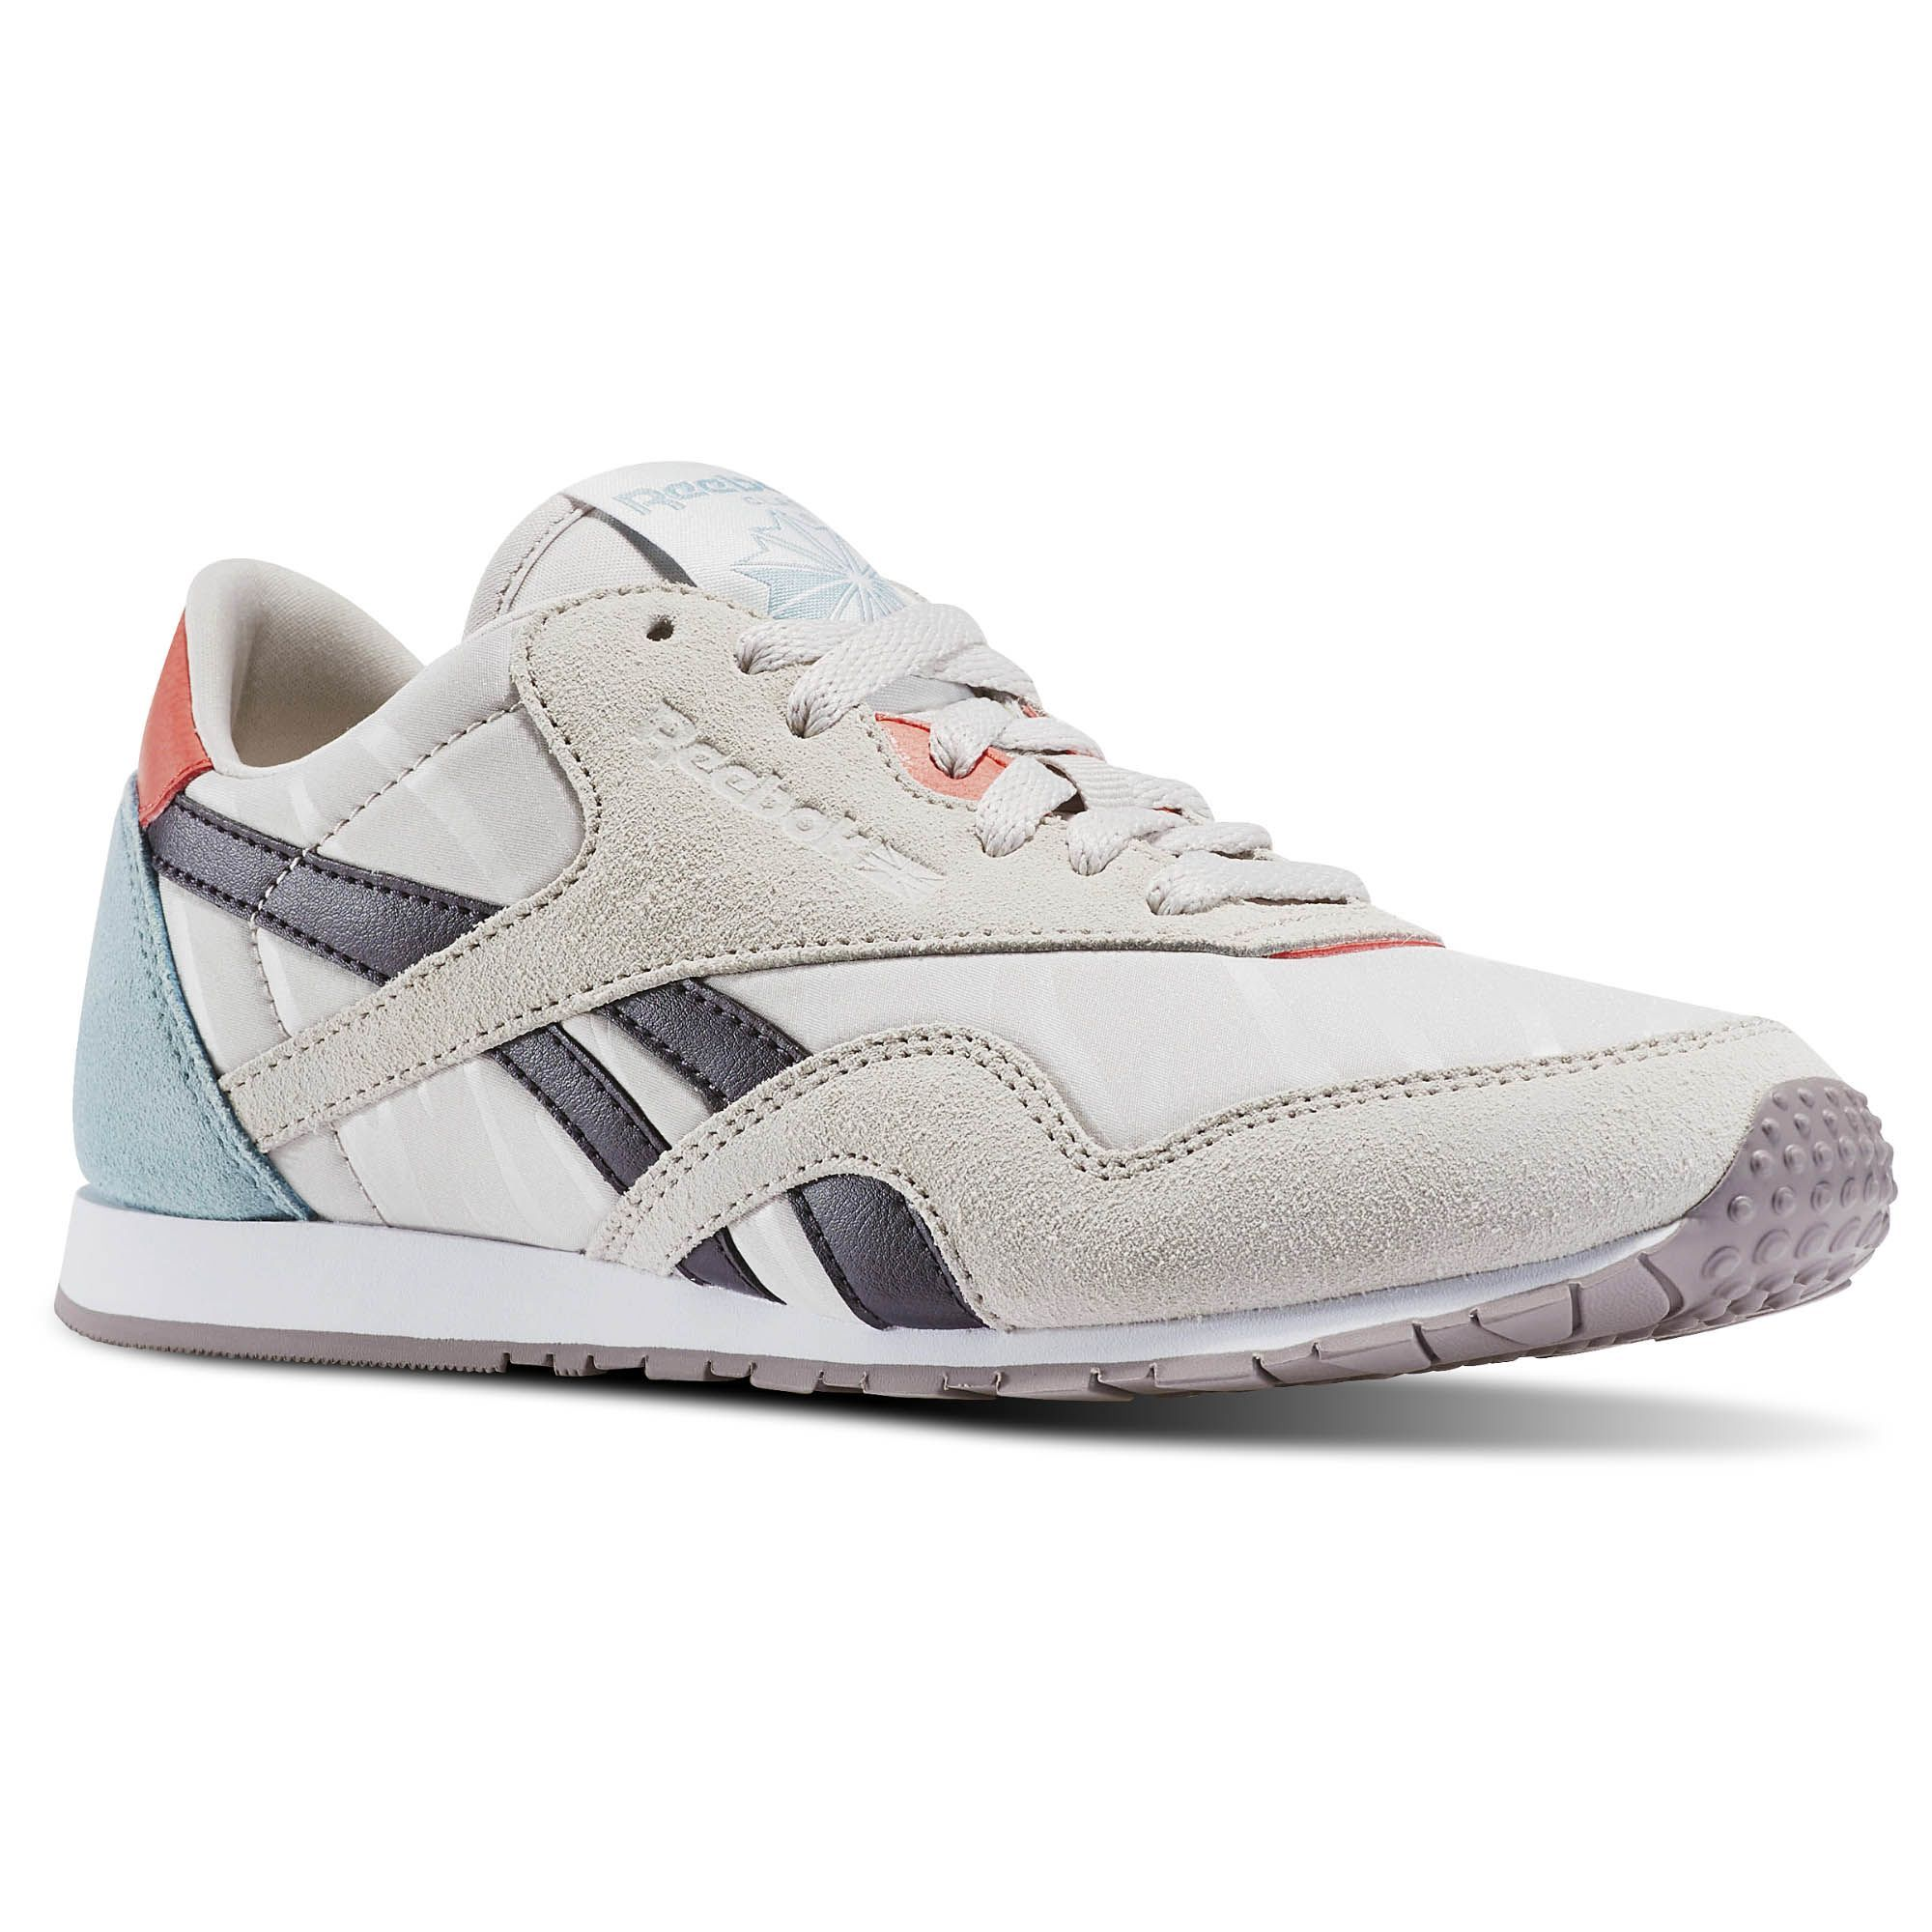 Reebok Walking / Classic Leather Nylon Slim Candy Girl Women